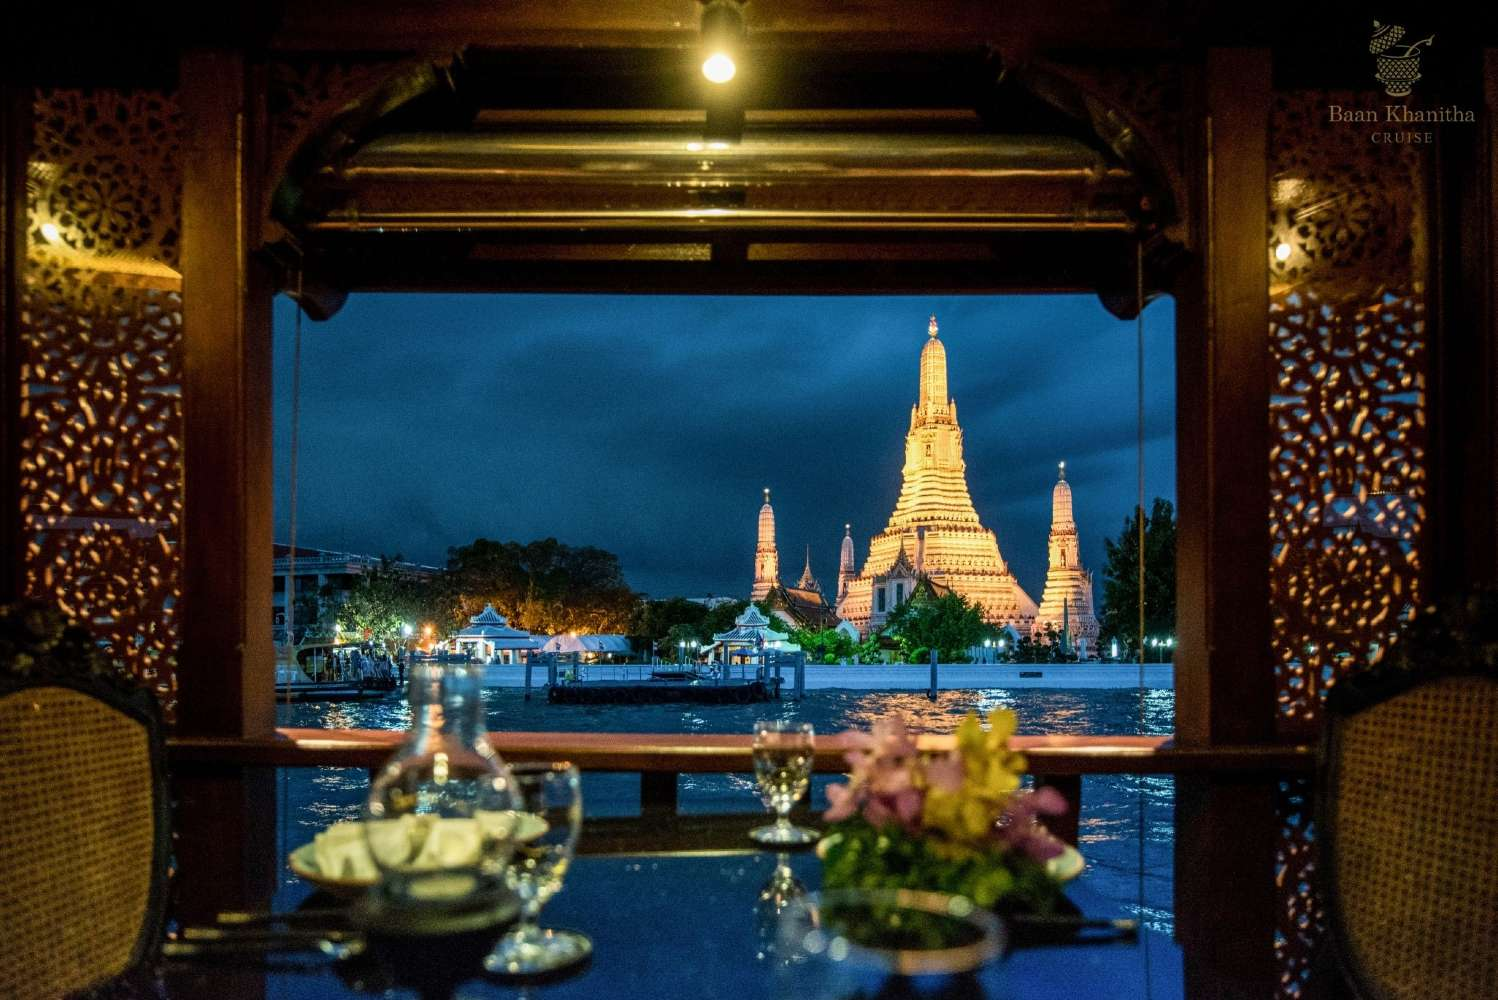 View of the Wat Arun during the Baan Khanitha Cruise over the Chao Phraya River in Bangkok.